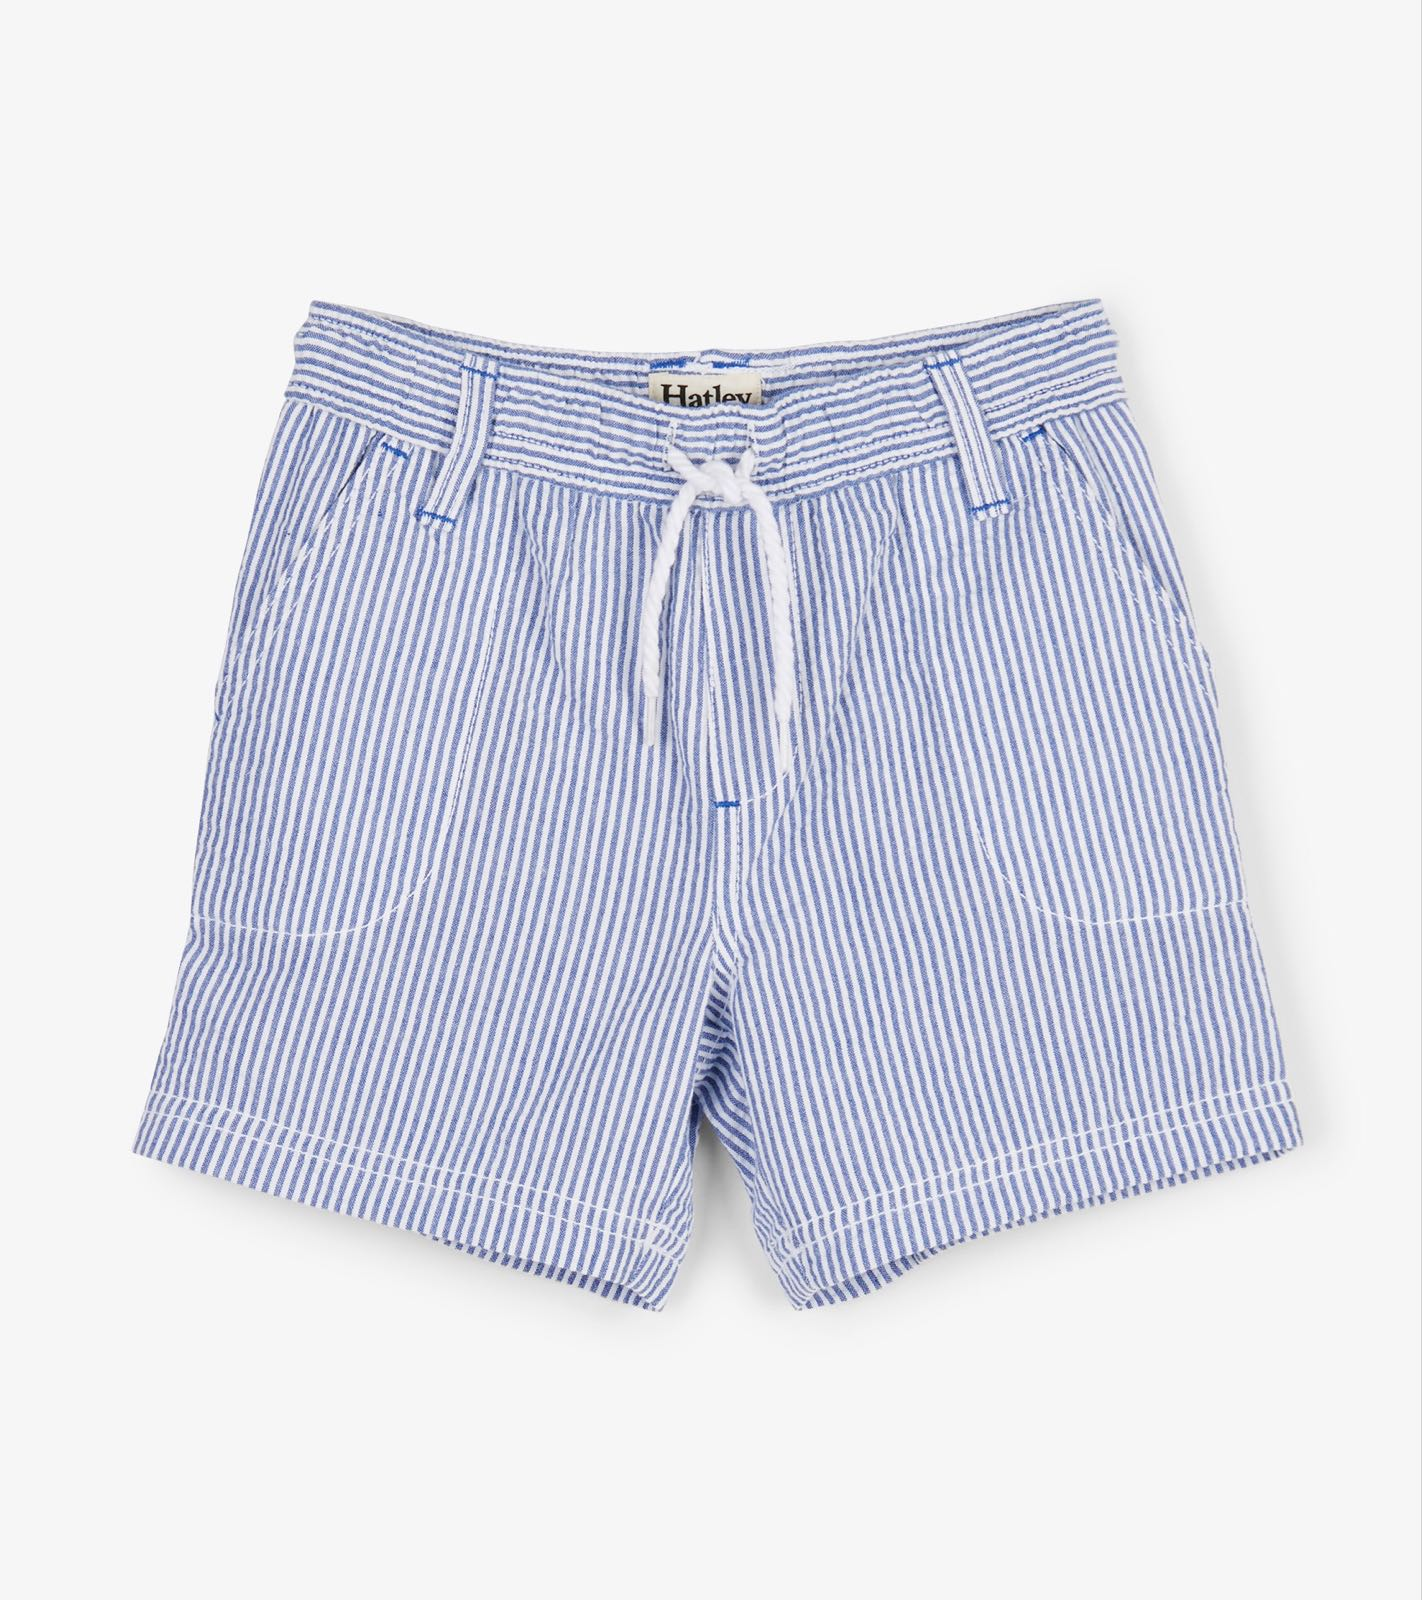 Hatley Blue Stripes Woven Shorts